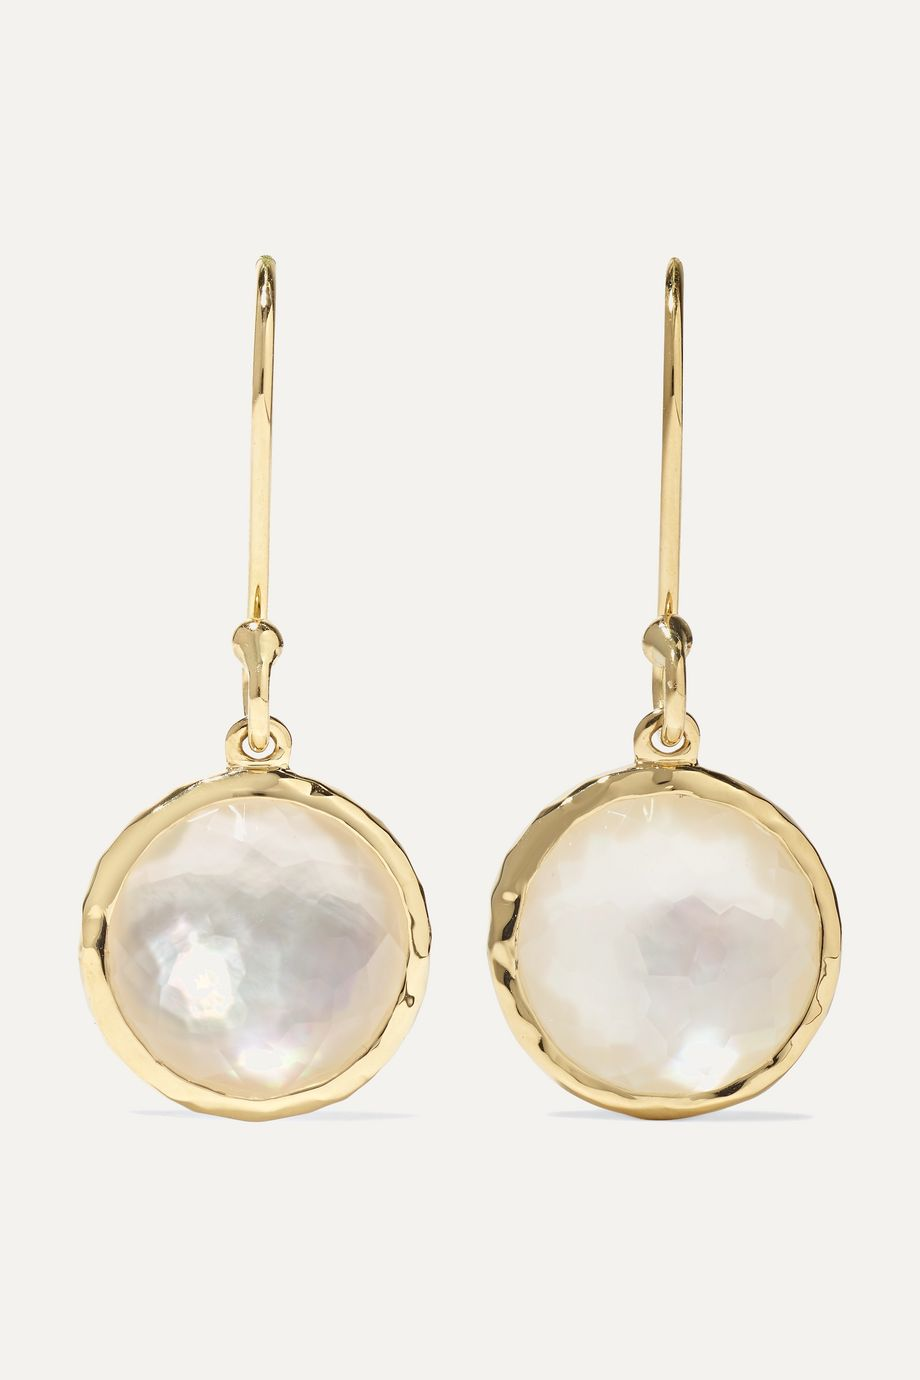 Ippolita Lollipop 18-karat gold mother-of-pearl earrings